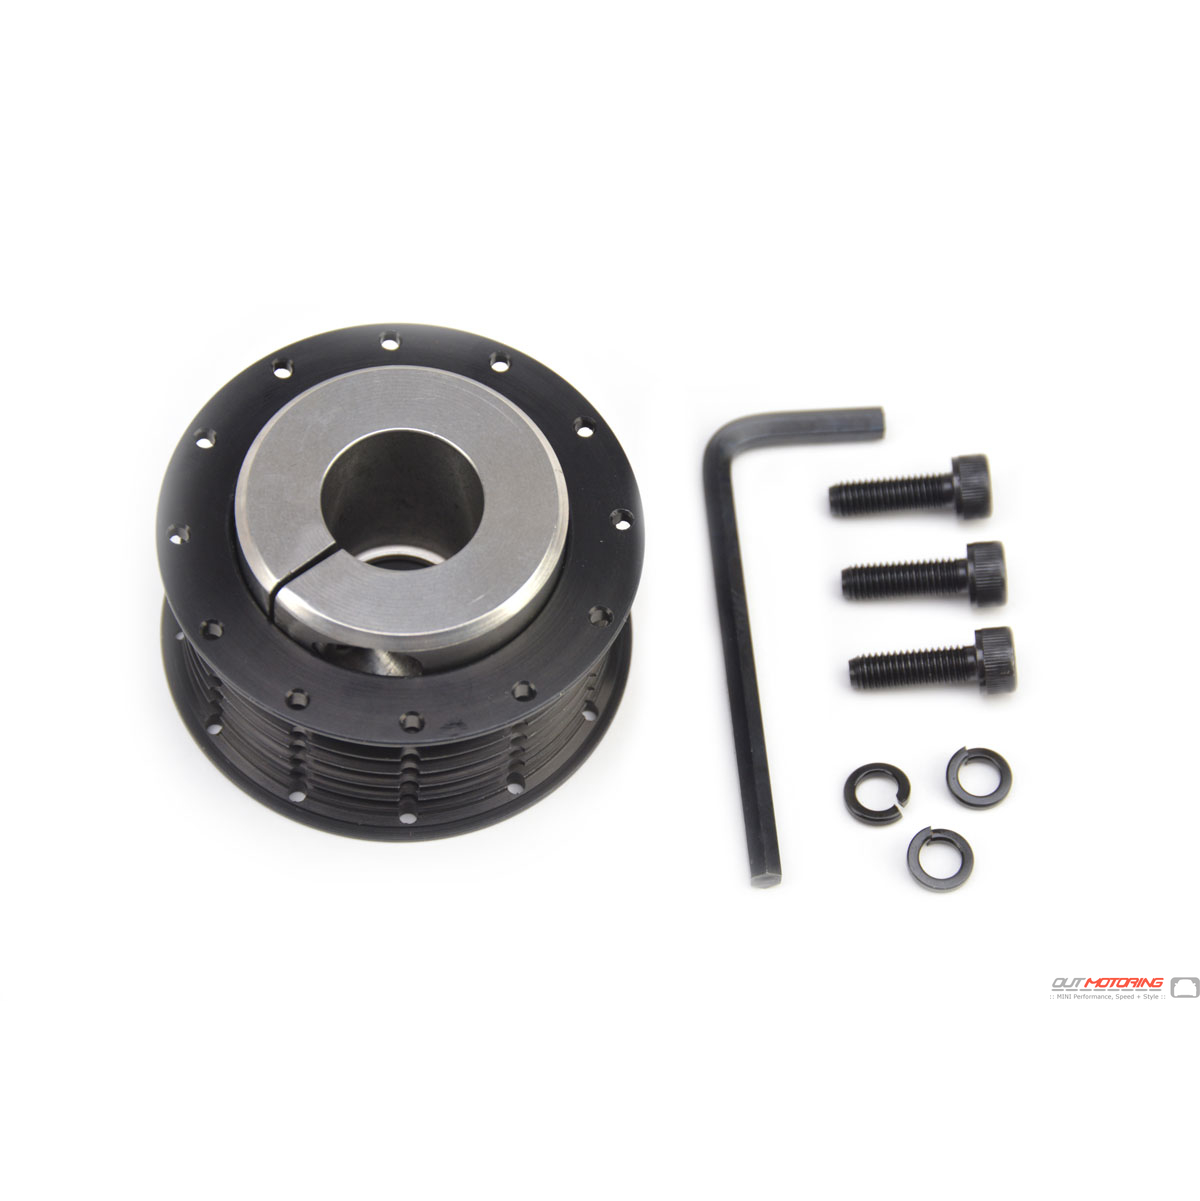 alta mini performance 15 17 supercharger pulley mini cooper accessories mini cooper parts. Black Bedroom Furniture Sets. Home Design Ideas